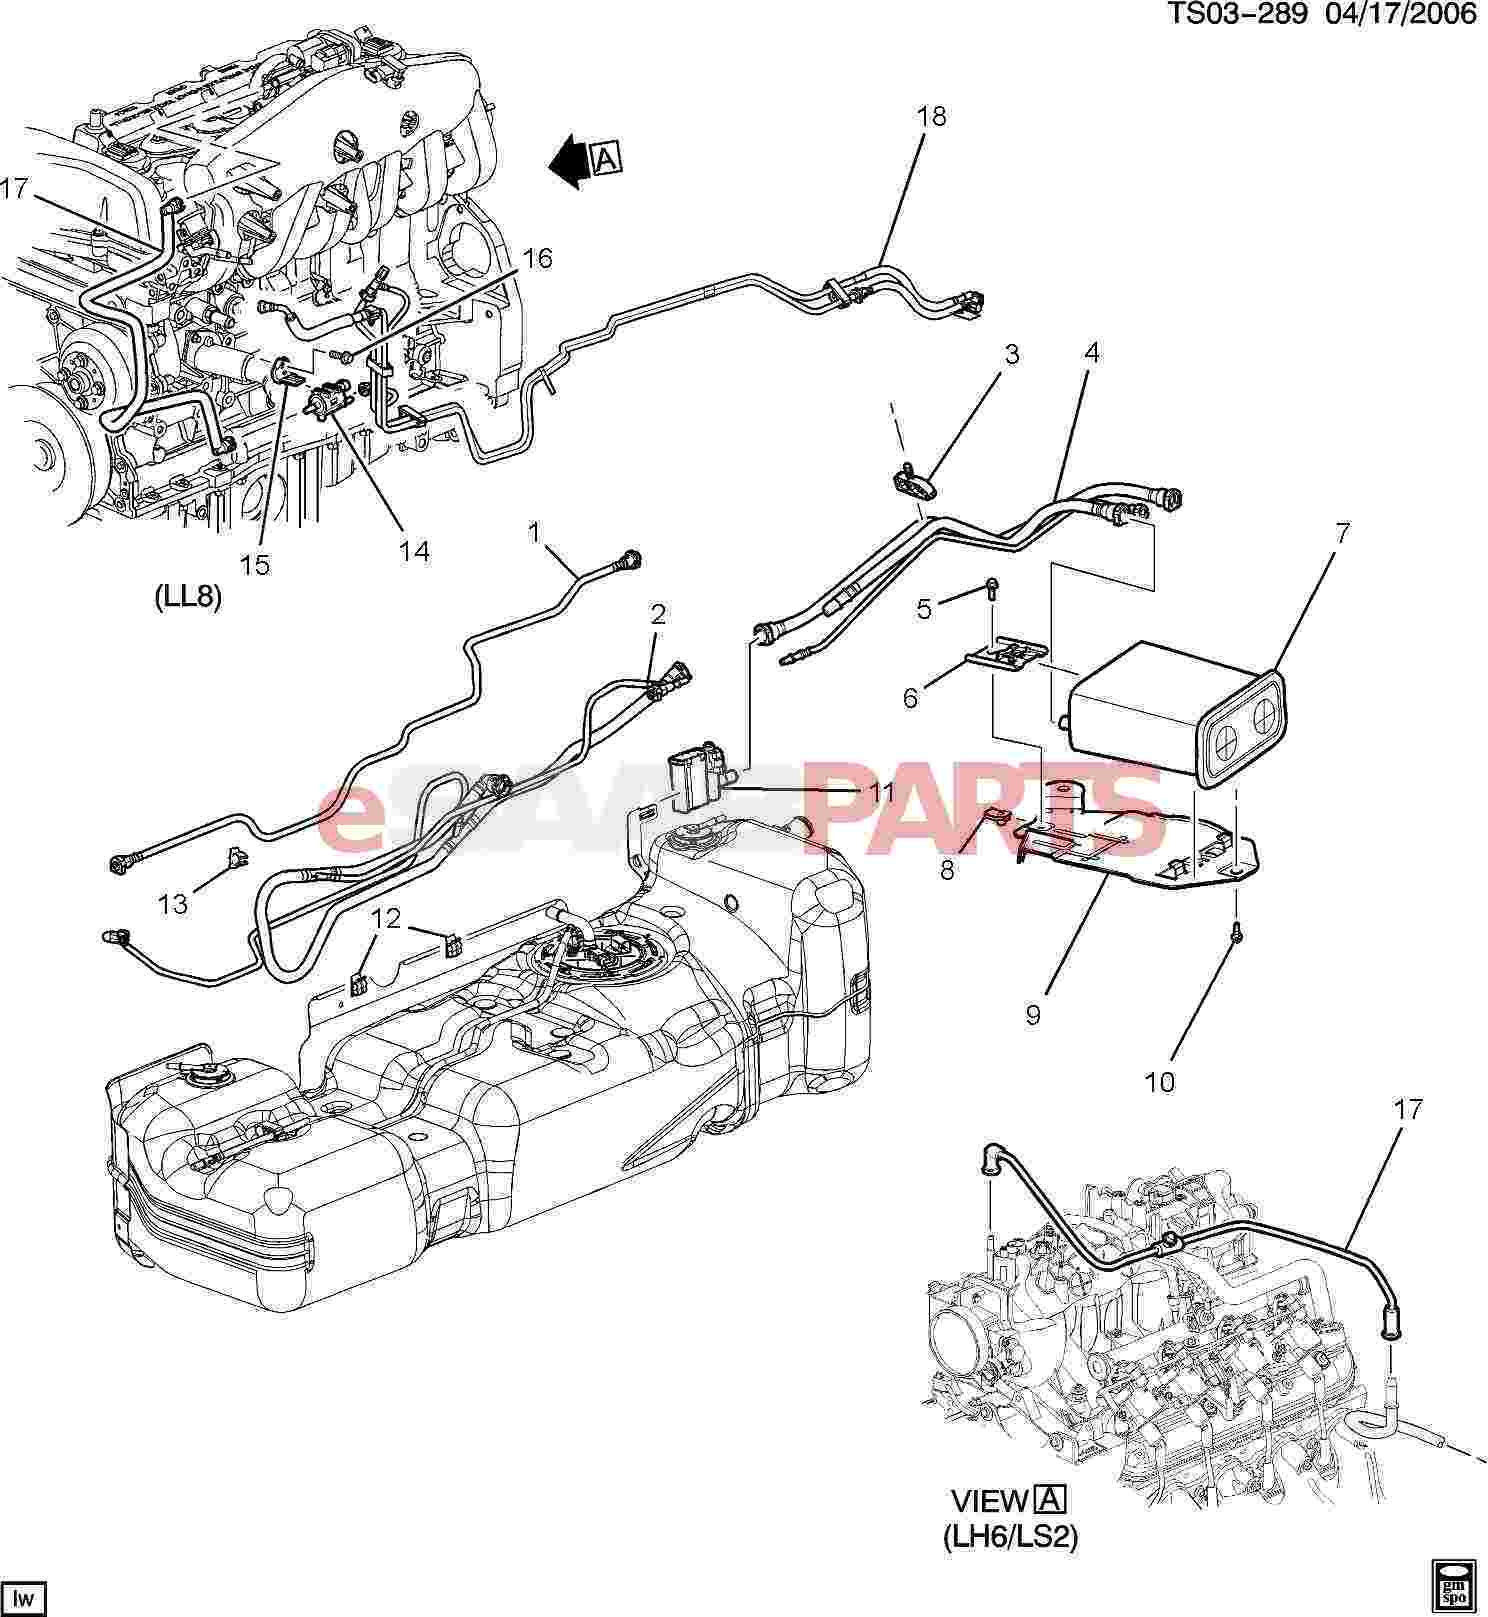 Chevy 2005 Trailblazer Wiring Diagram Evap : 42 Wiring